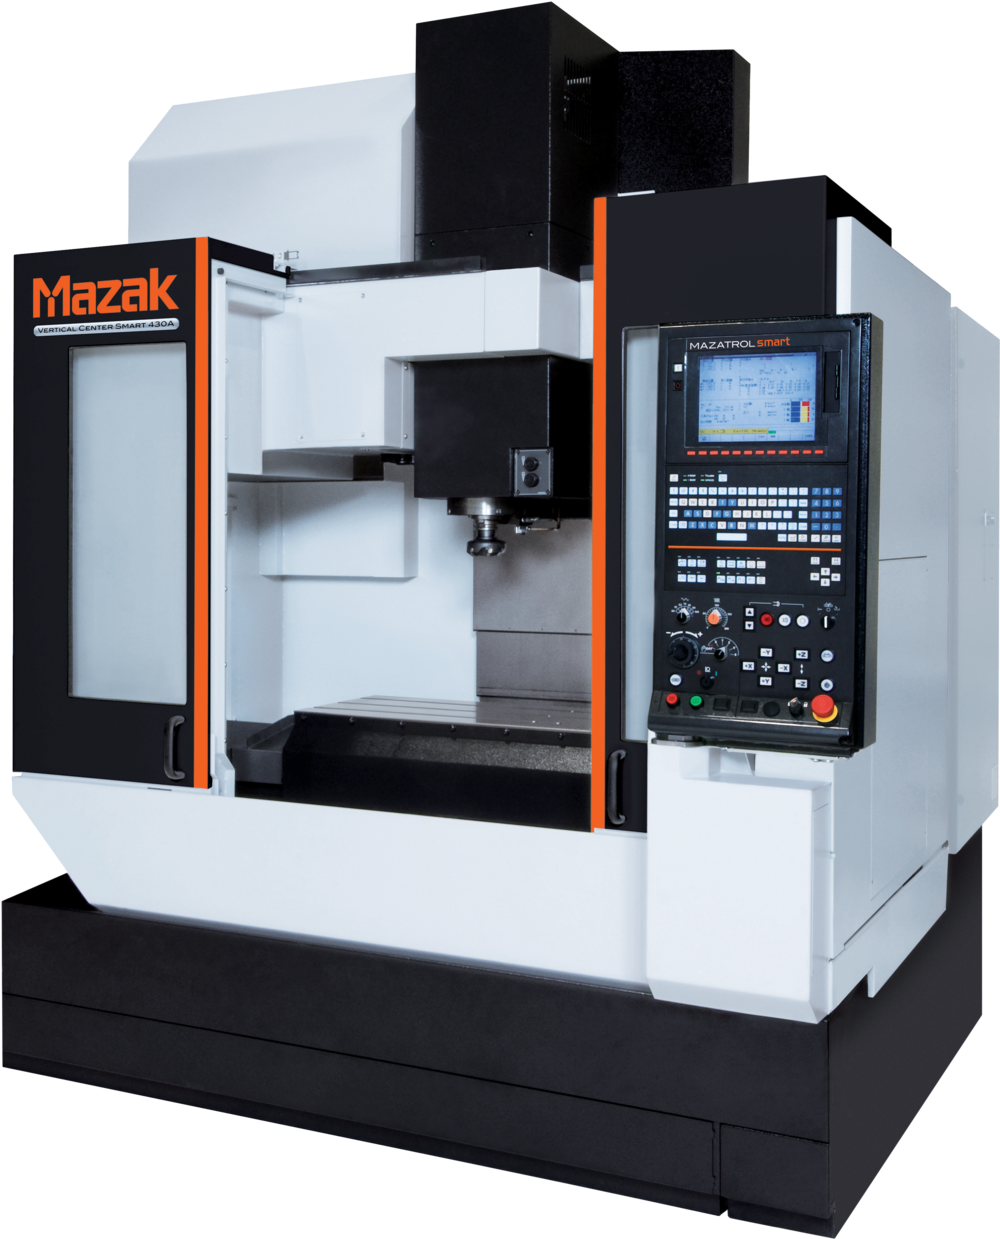 Mazak vcs430A: 2.5-Axis cnc machining center